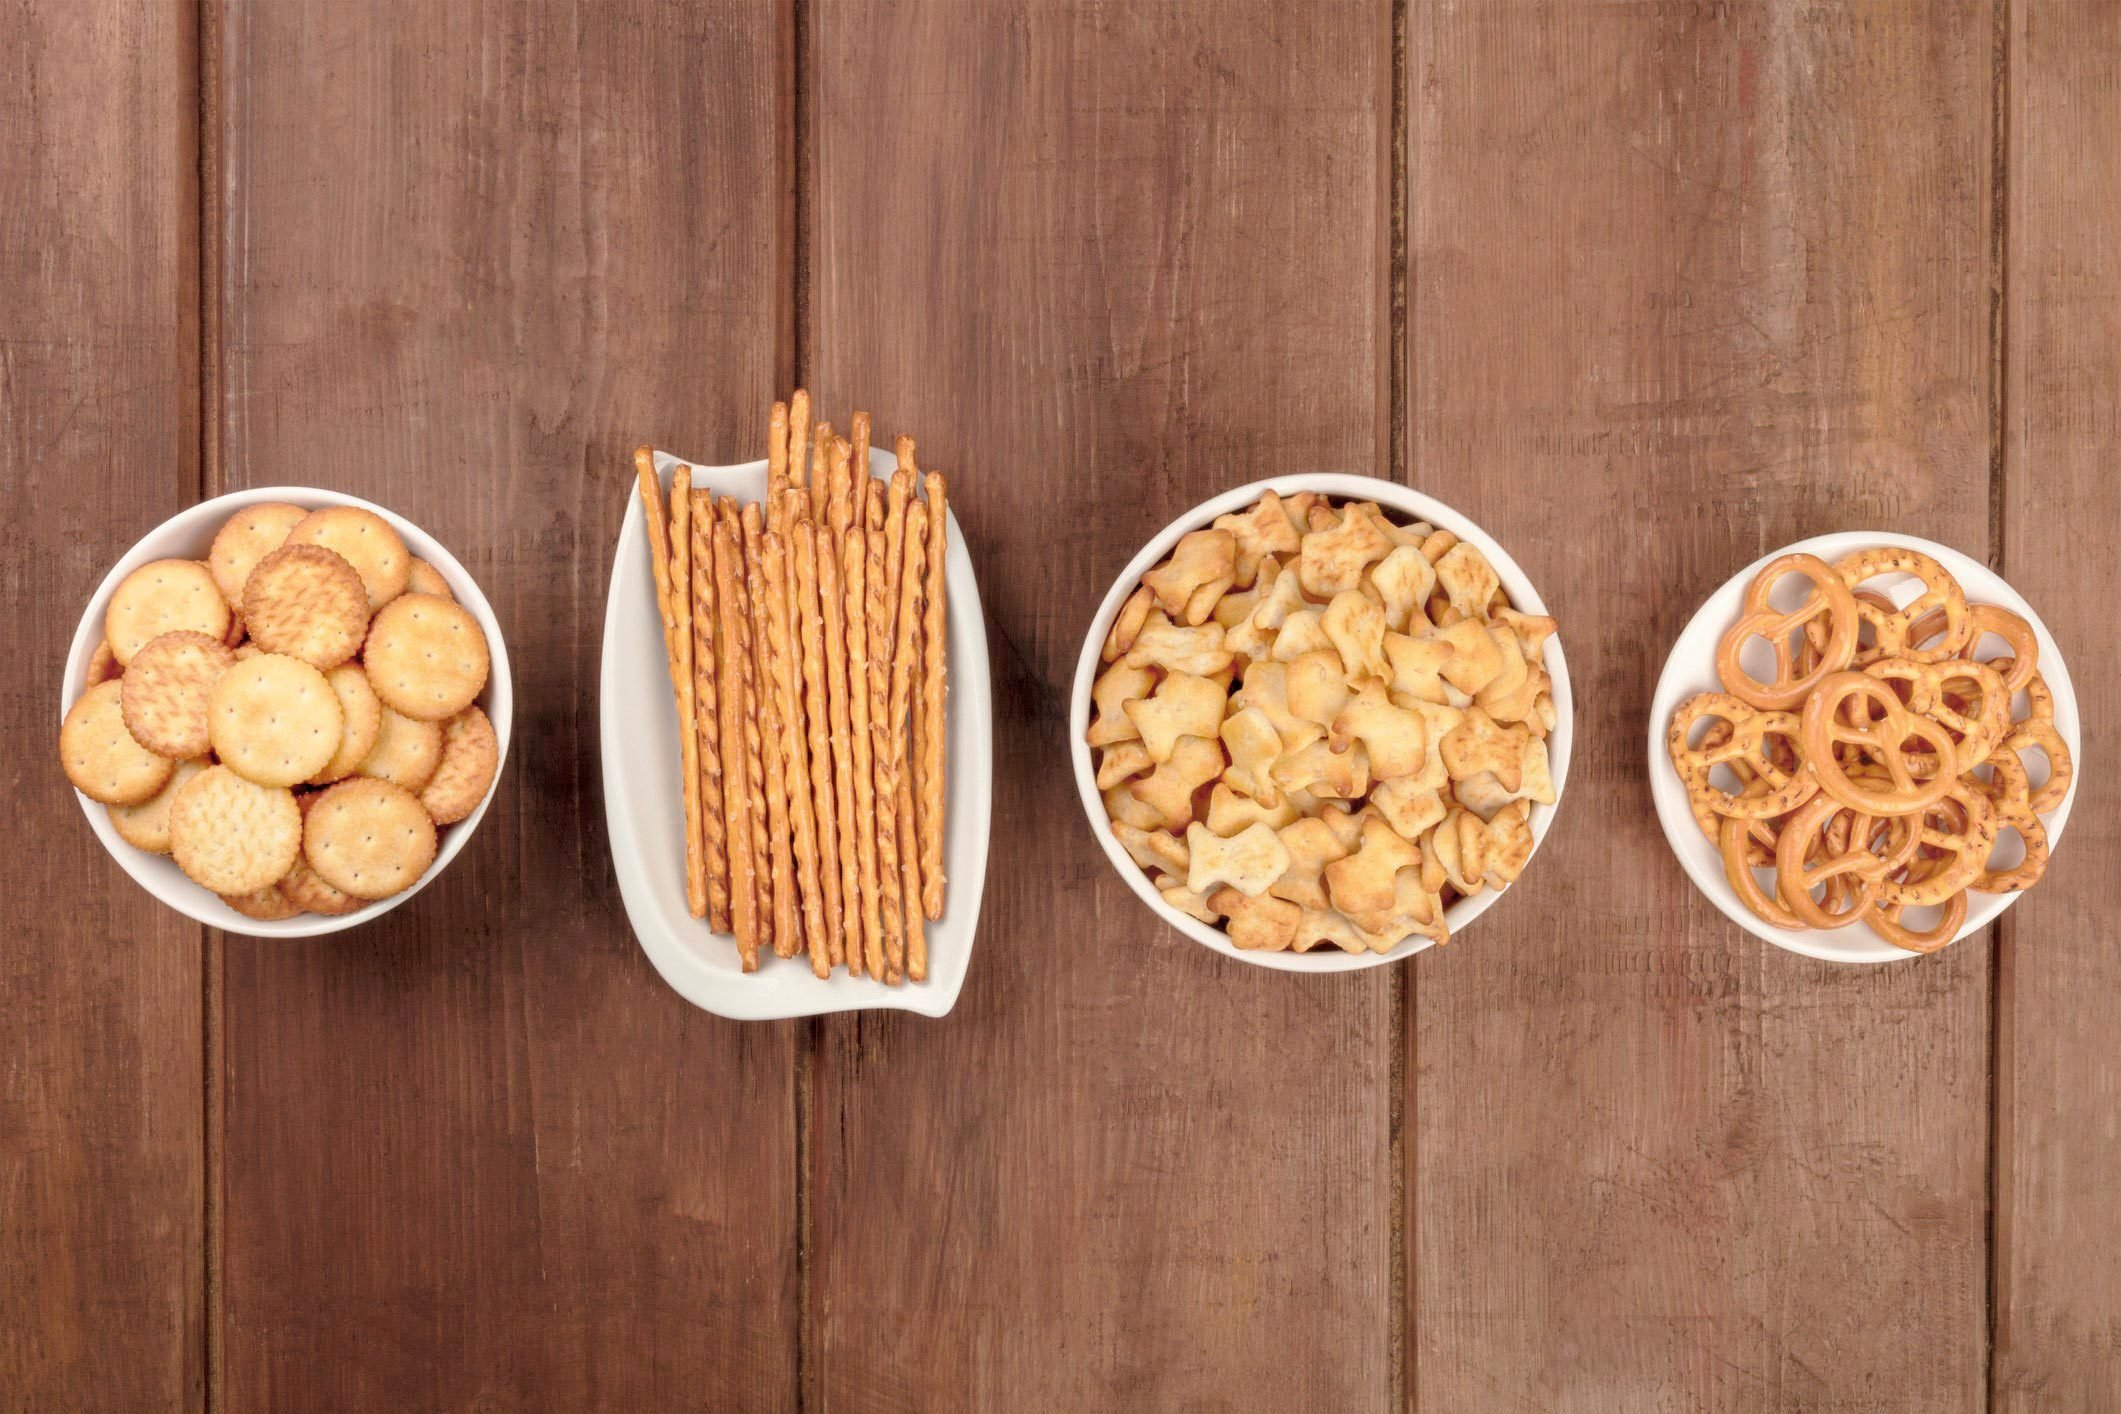 Salty crackers, sticks, pretzels, and goldfishes, shot from the top on a dark wooden background with copy space. Party snacks mix with a place for text